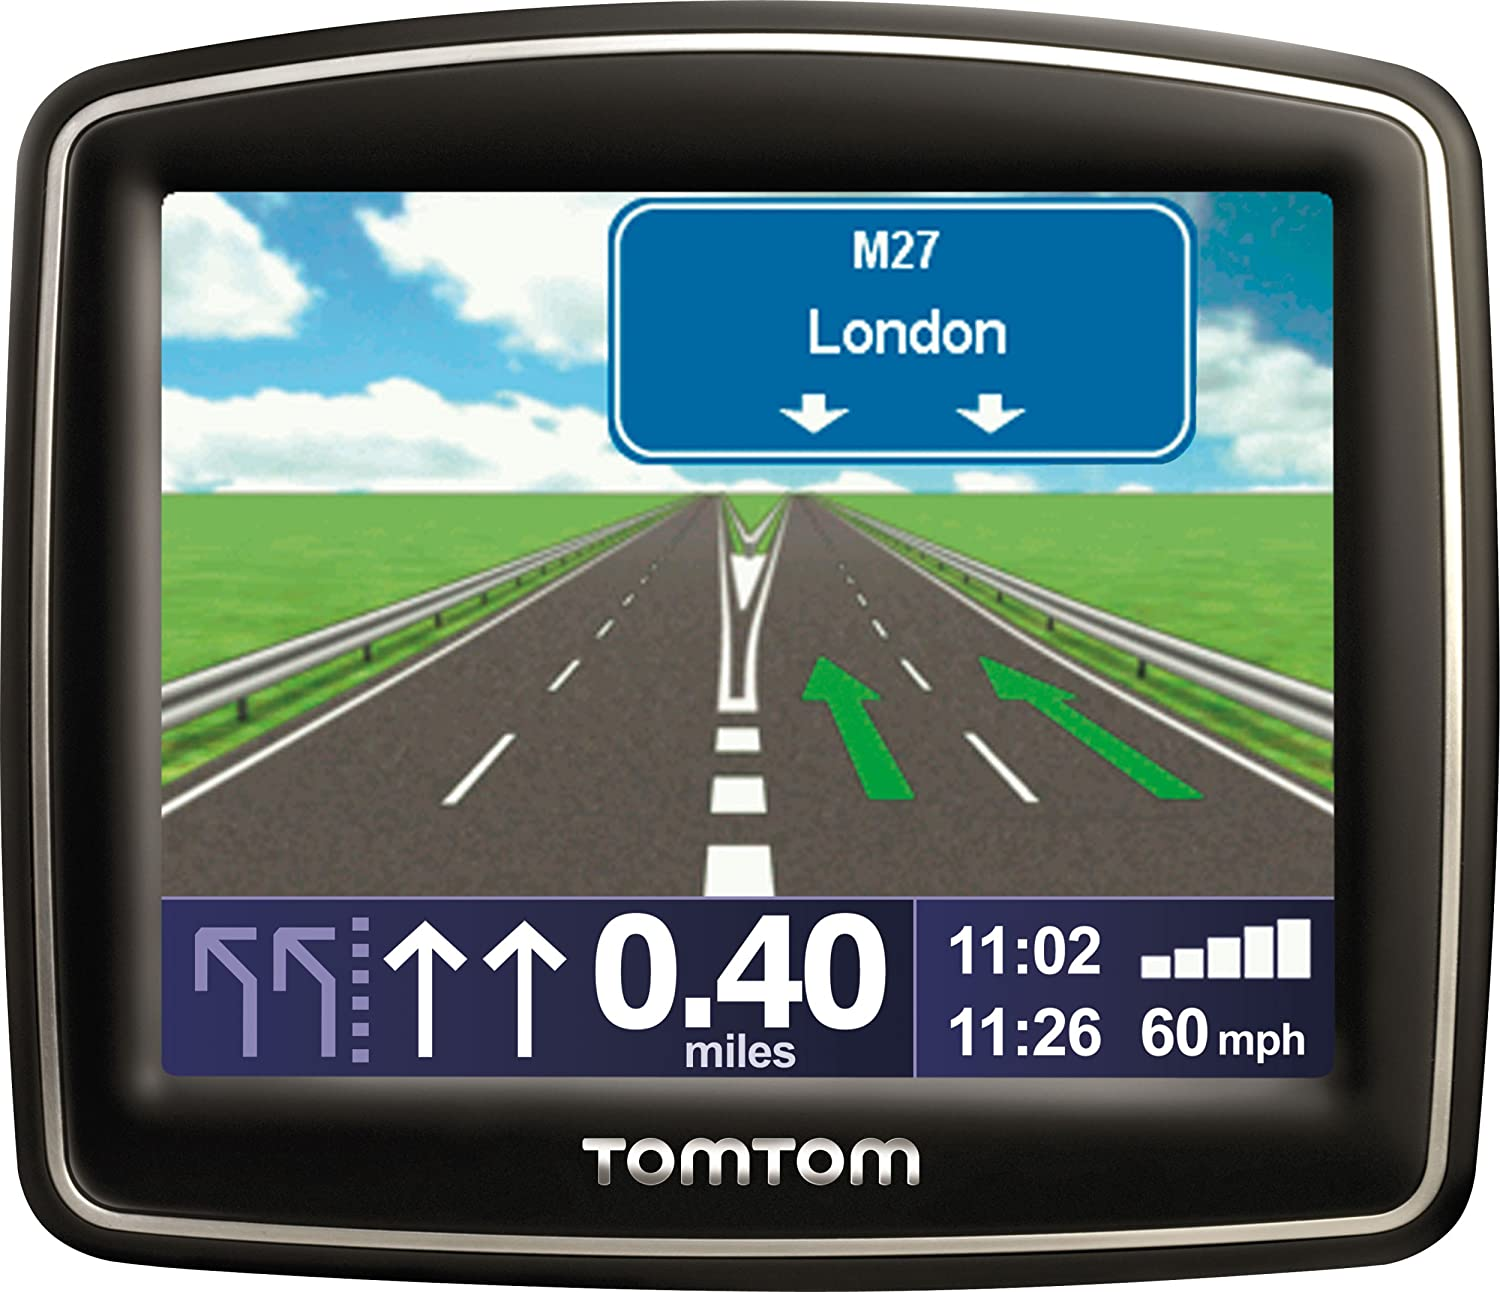 TomTom One Classic 3.5' Sat Nav with UK and Ireland Maps ONE Classic UK & RoI GPS Units Reference NavEasy port Mount tom-tom v3 gb v4 v2